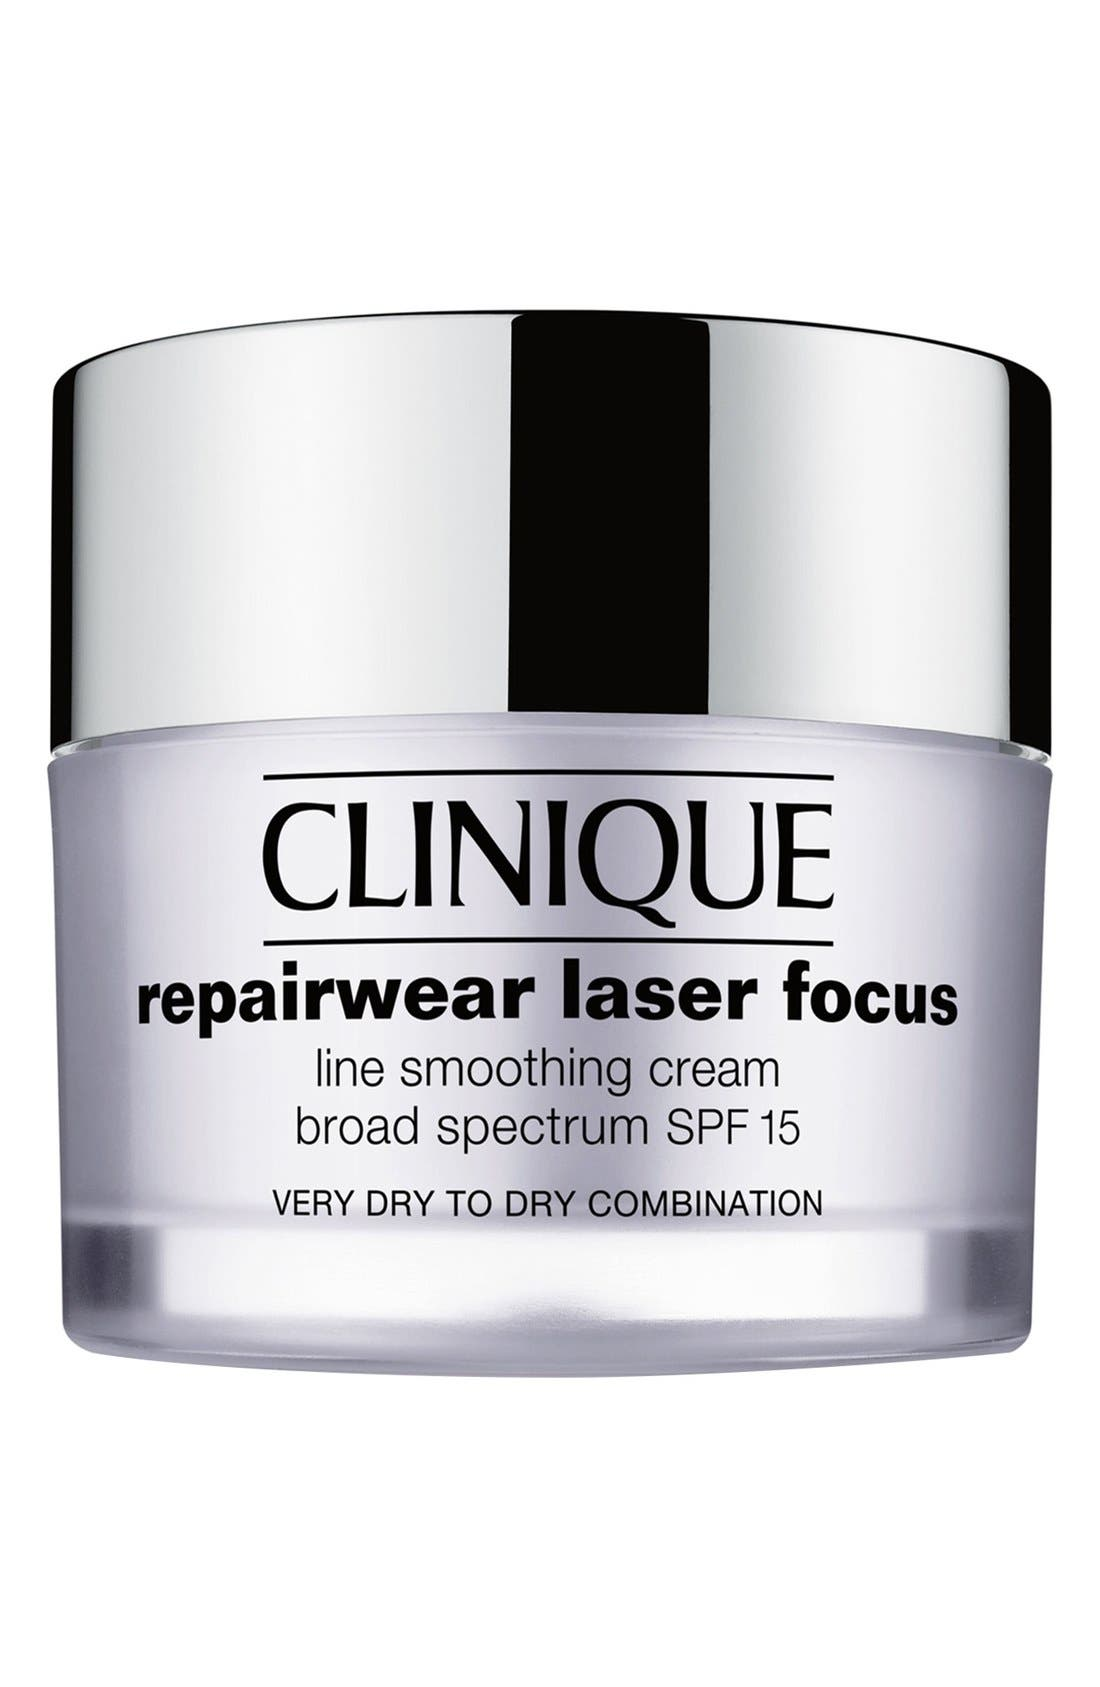 Repairwear Laser Focus SPF 15 Line Smoothing Cream for Combination Oily to Oily Skin,                             Main thumbnail 1, color,                             001